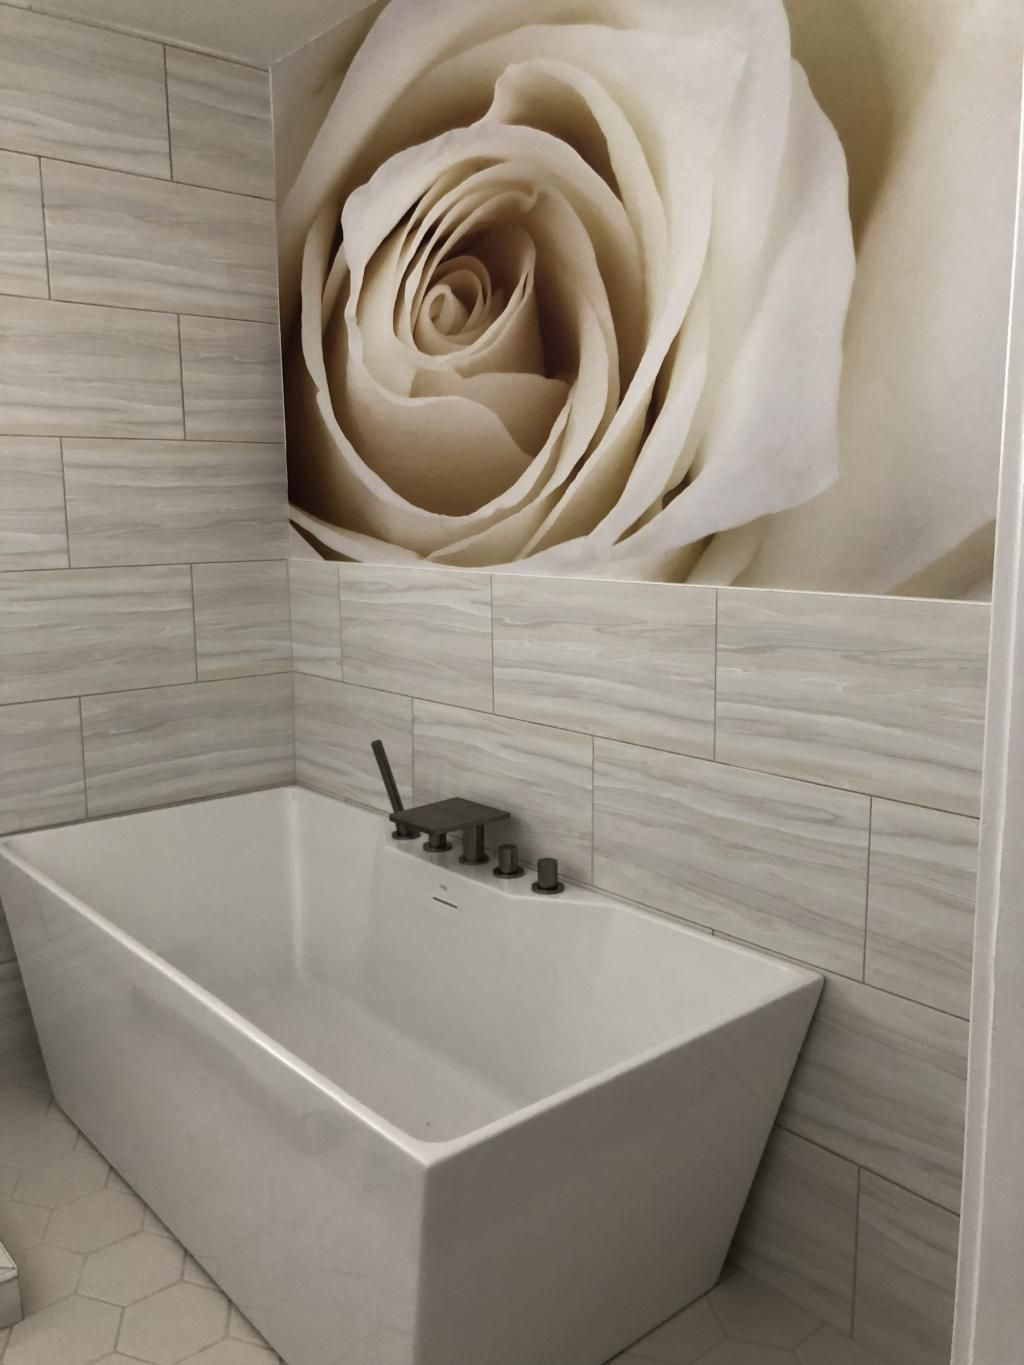 Close Up Of Beautiful White Rose Wall Mural Bathroom Wallpaper